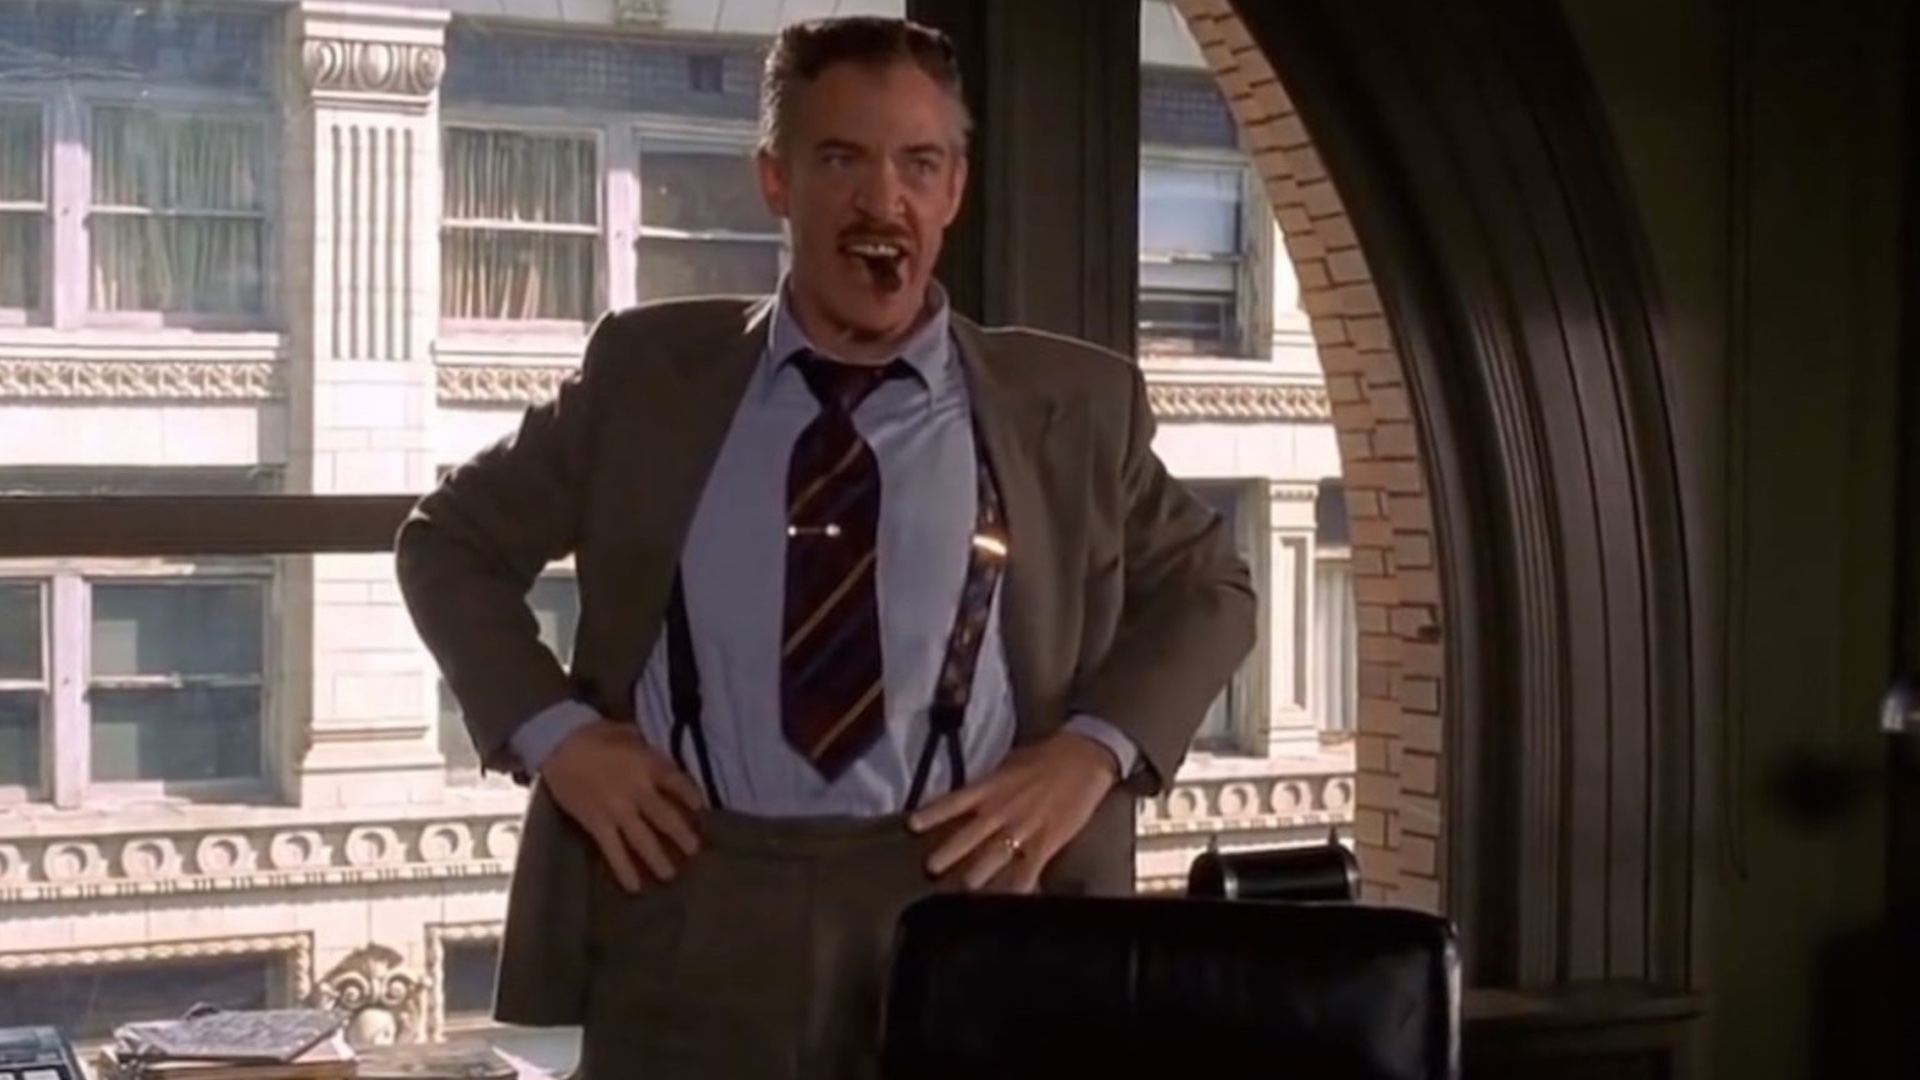 j-jonah-jameson-and-the-daily-bugle-will-be-introduced-in-spider-man-far-from-home-social.jpg